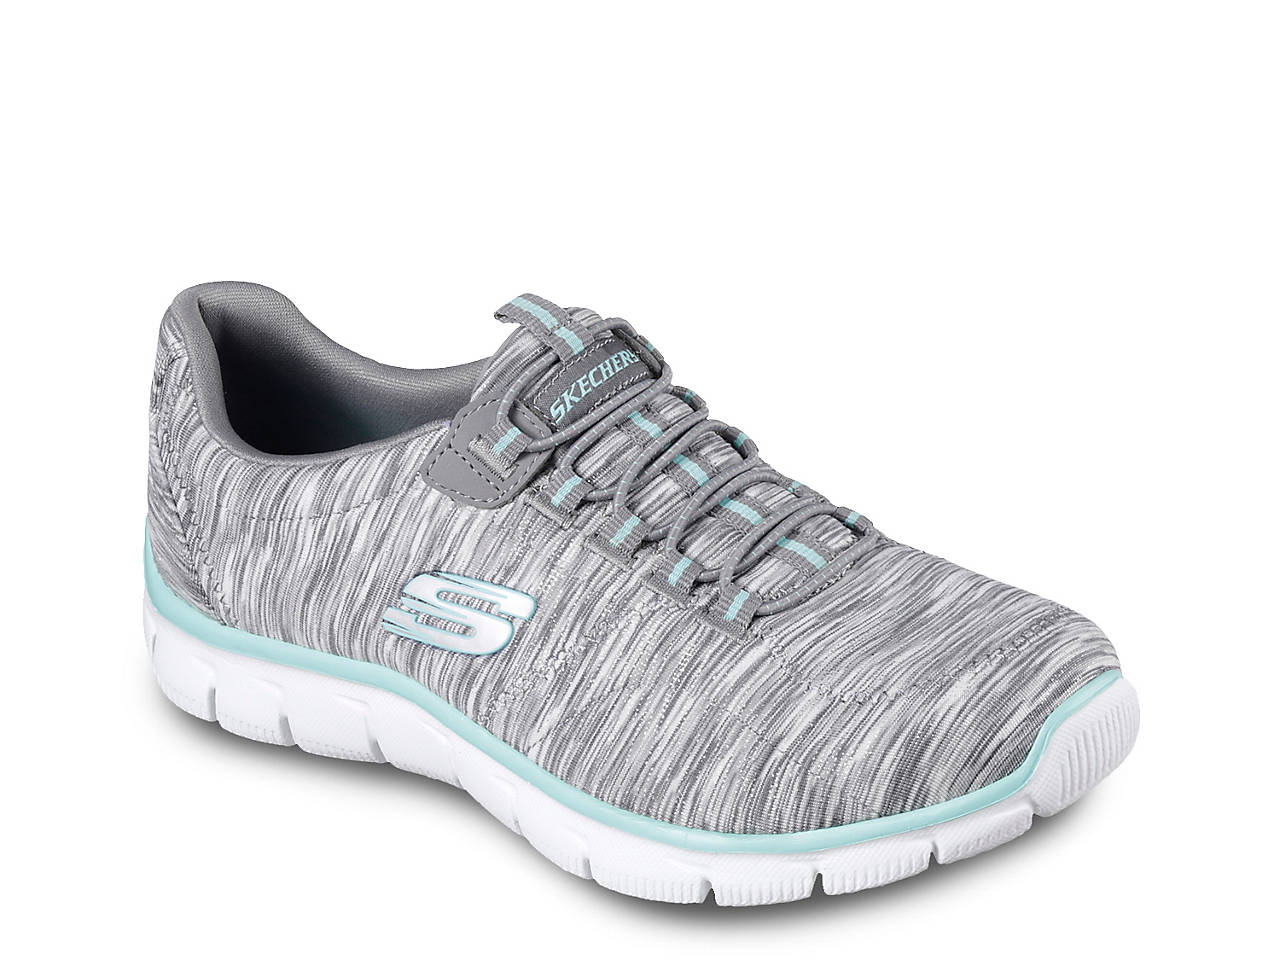 363a6fd2219f Skechers Relaxed Fit Empire Game On Slip-On Sneaker - Women s ...